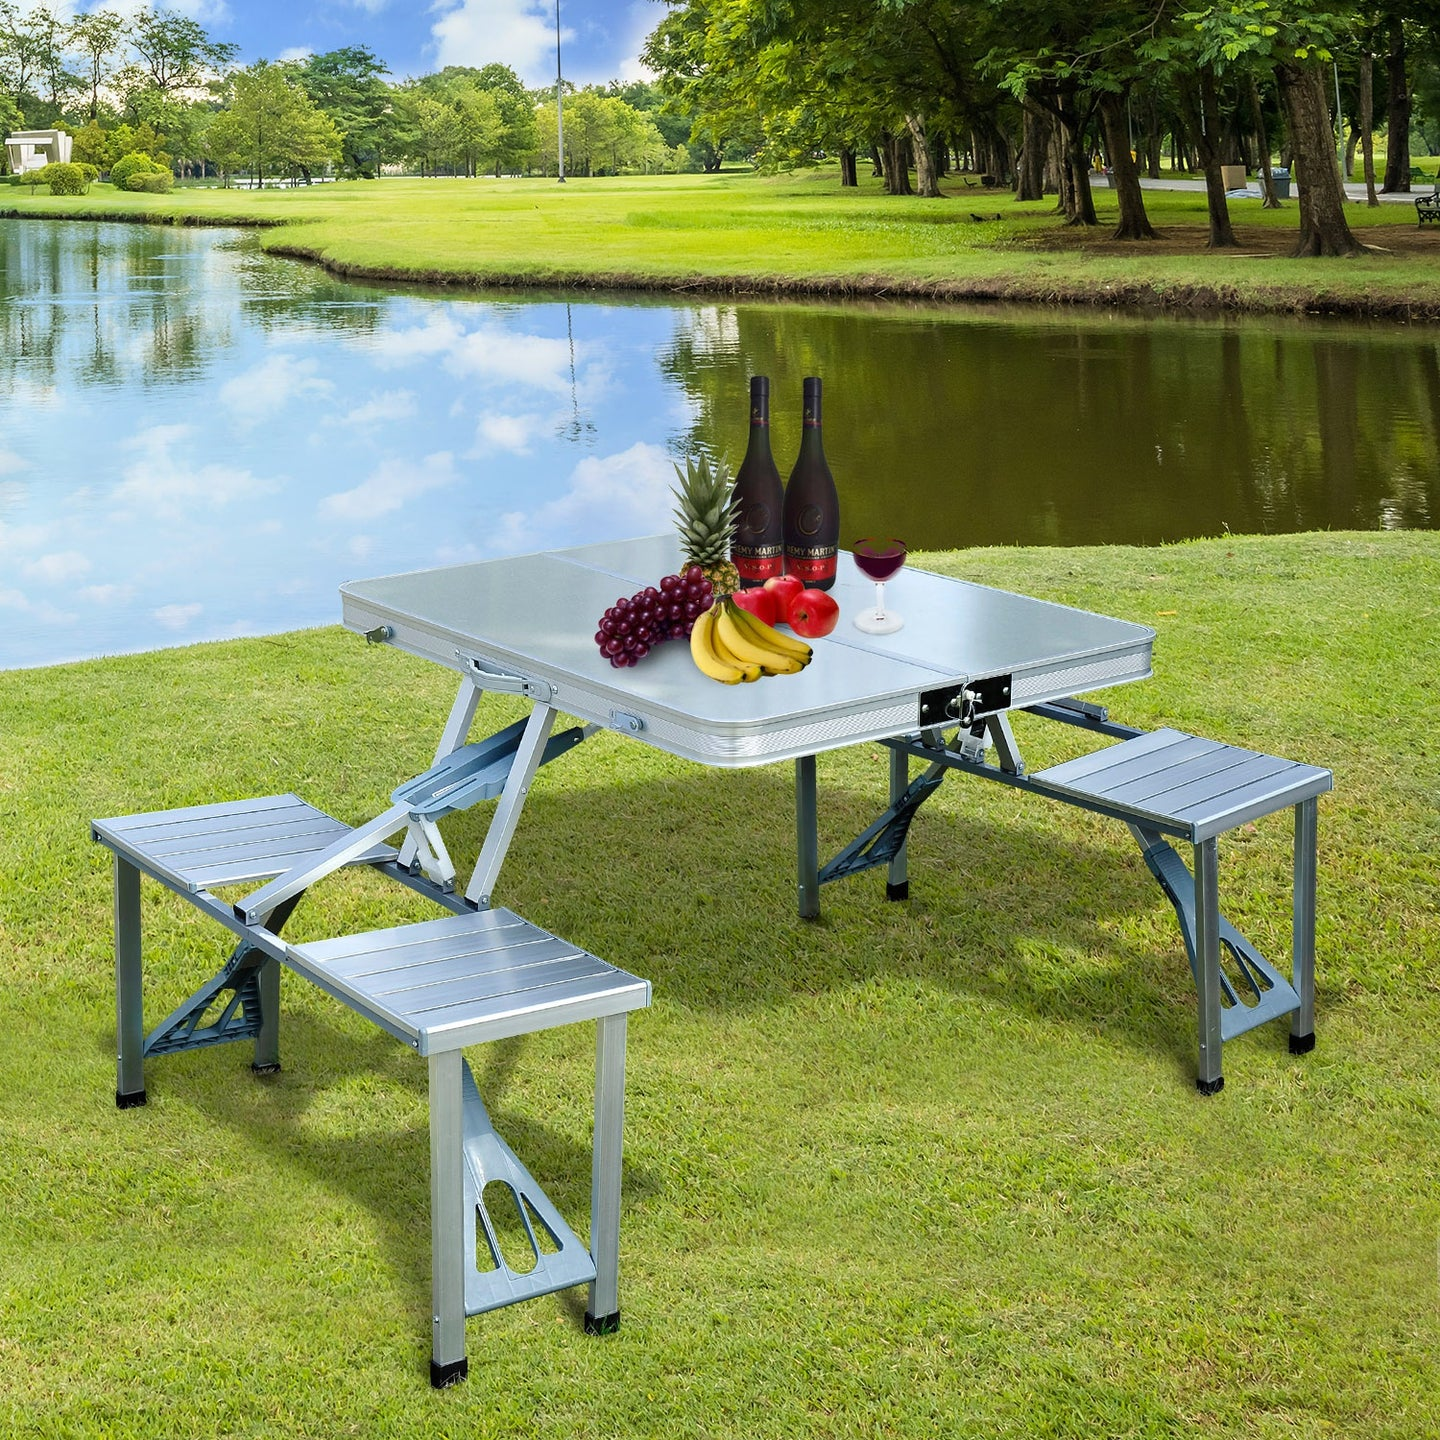 Outsunny Aluminum Portable Picnic Table Chair Set